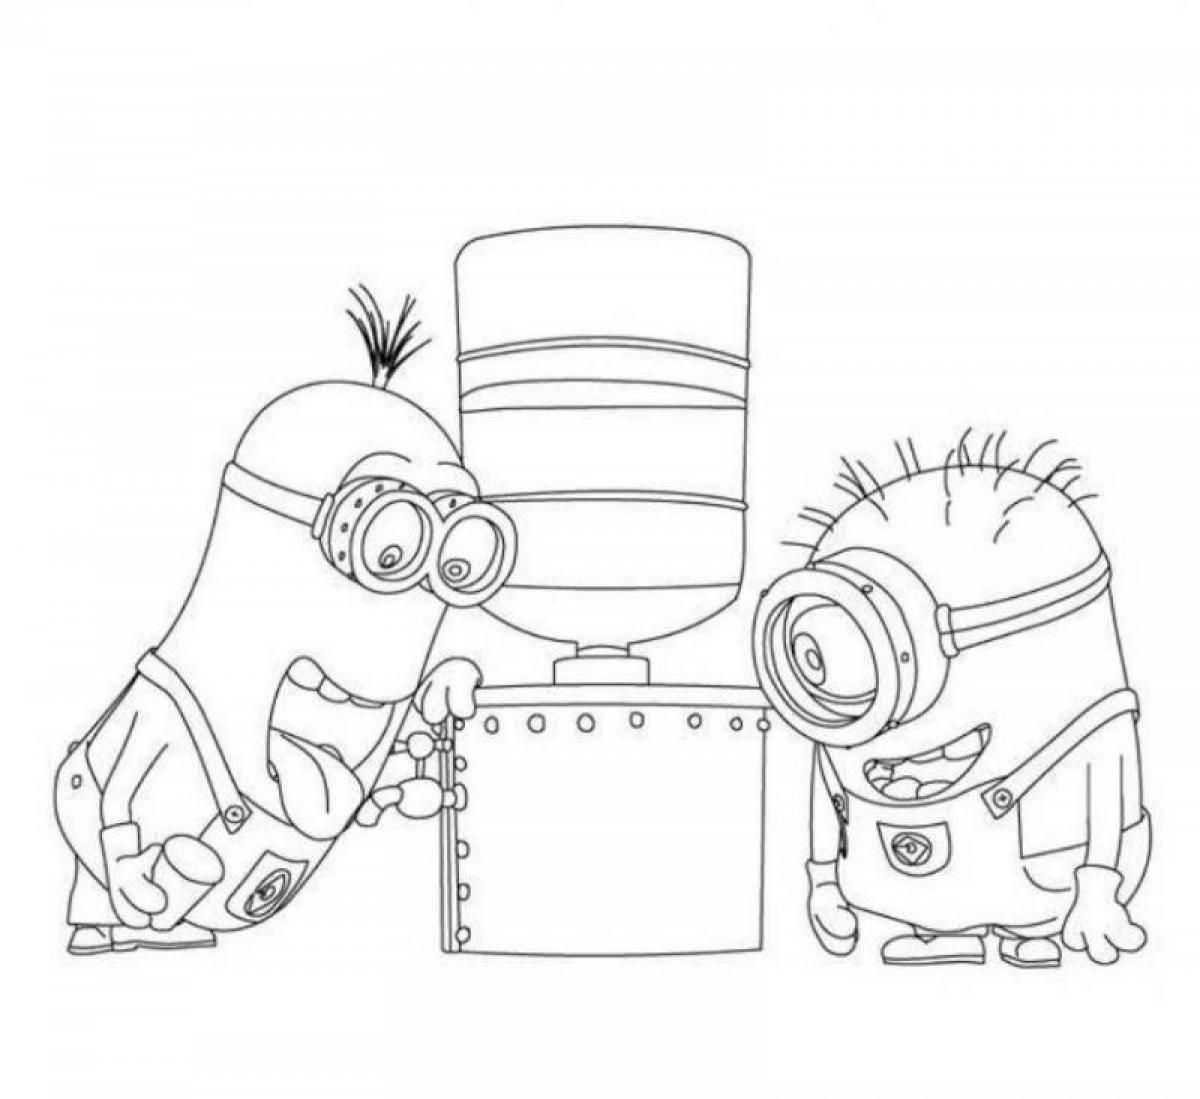 Minion maid coloring pages - Color Sheets